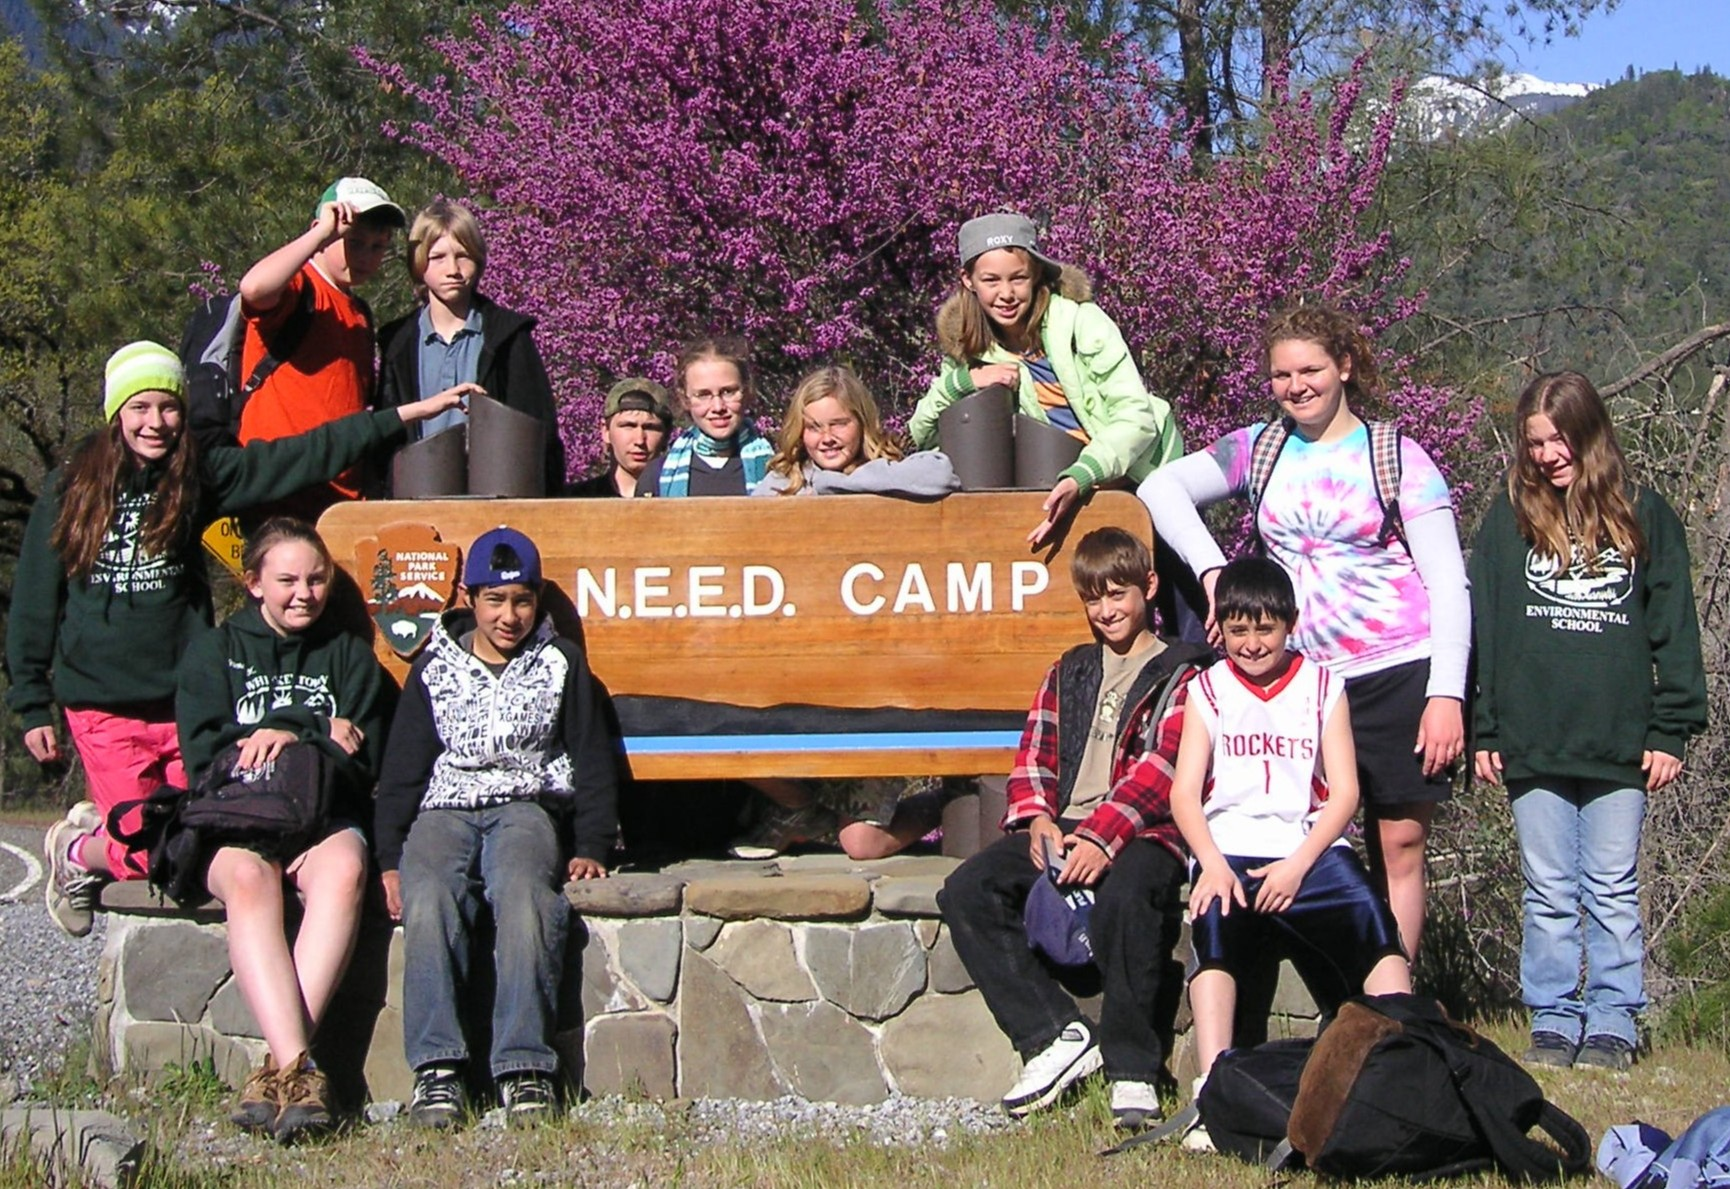 Kids standing around the NEED camp sign